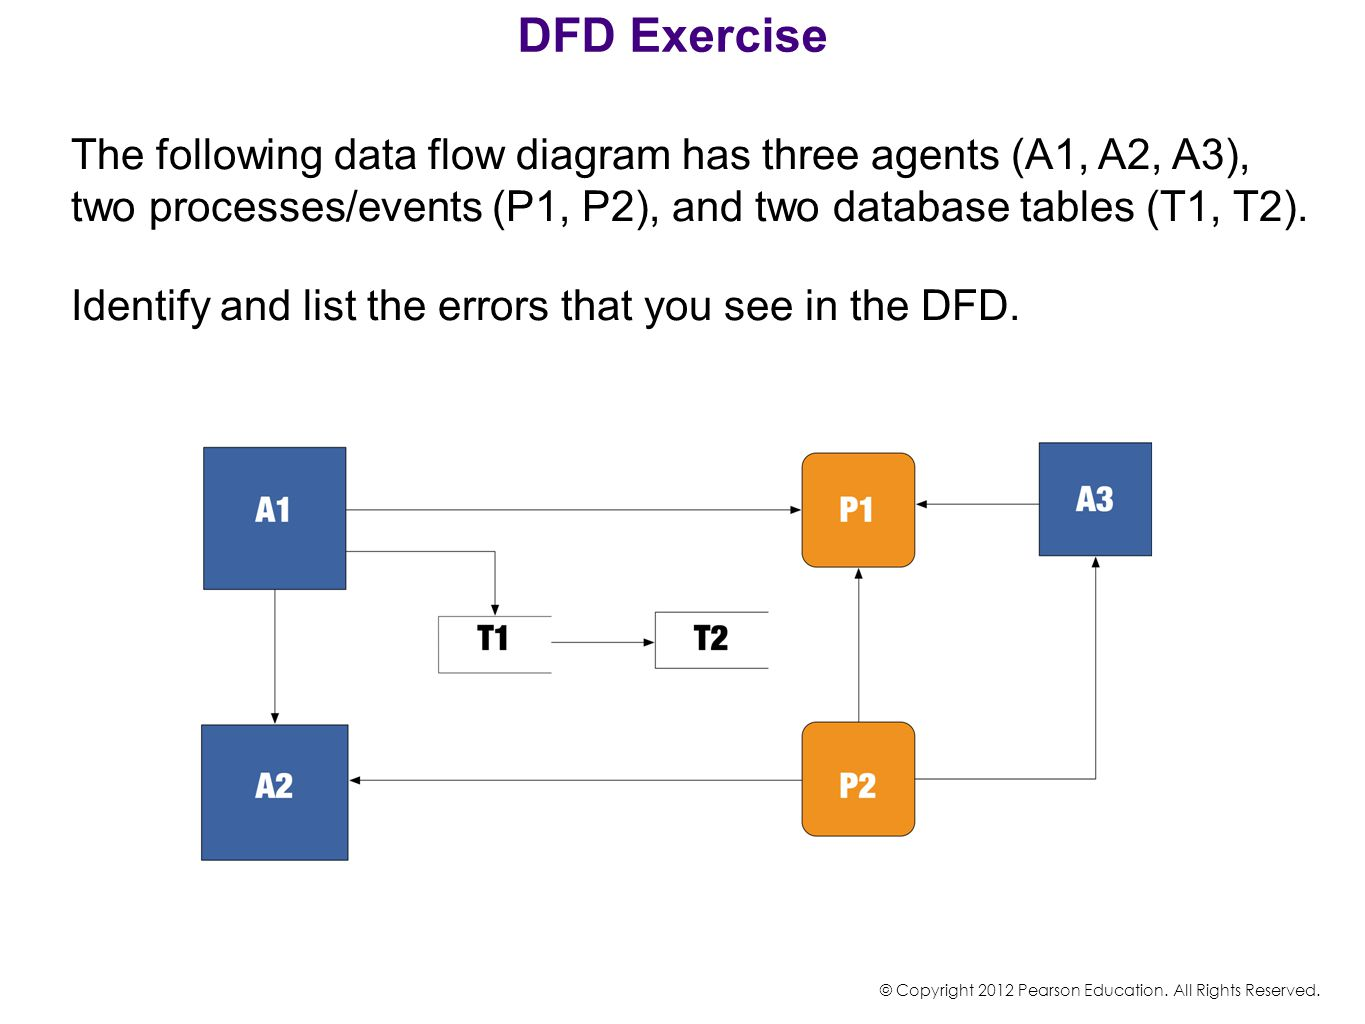 Chapter 4 Accounting Systems Business Processes Process Flow Diagram Exercise Dfd The Following Data Has Three Agents A1 A2 A3